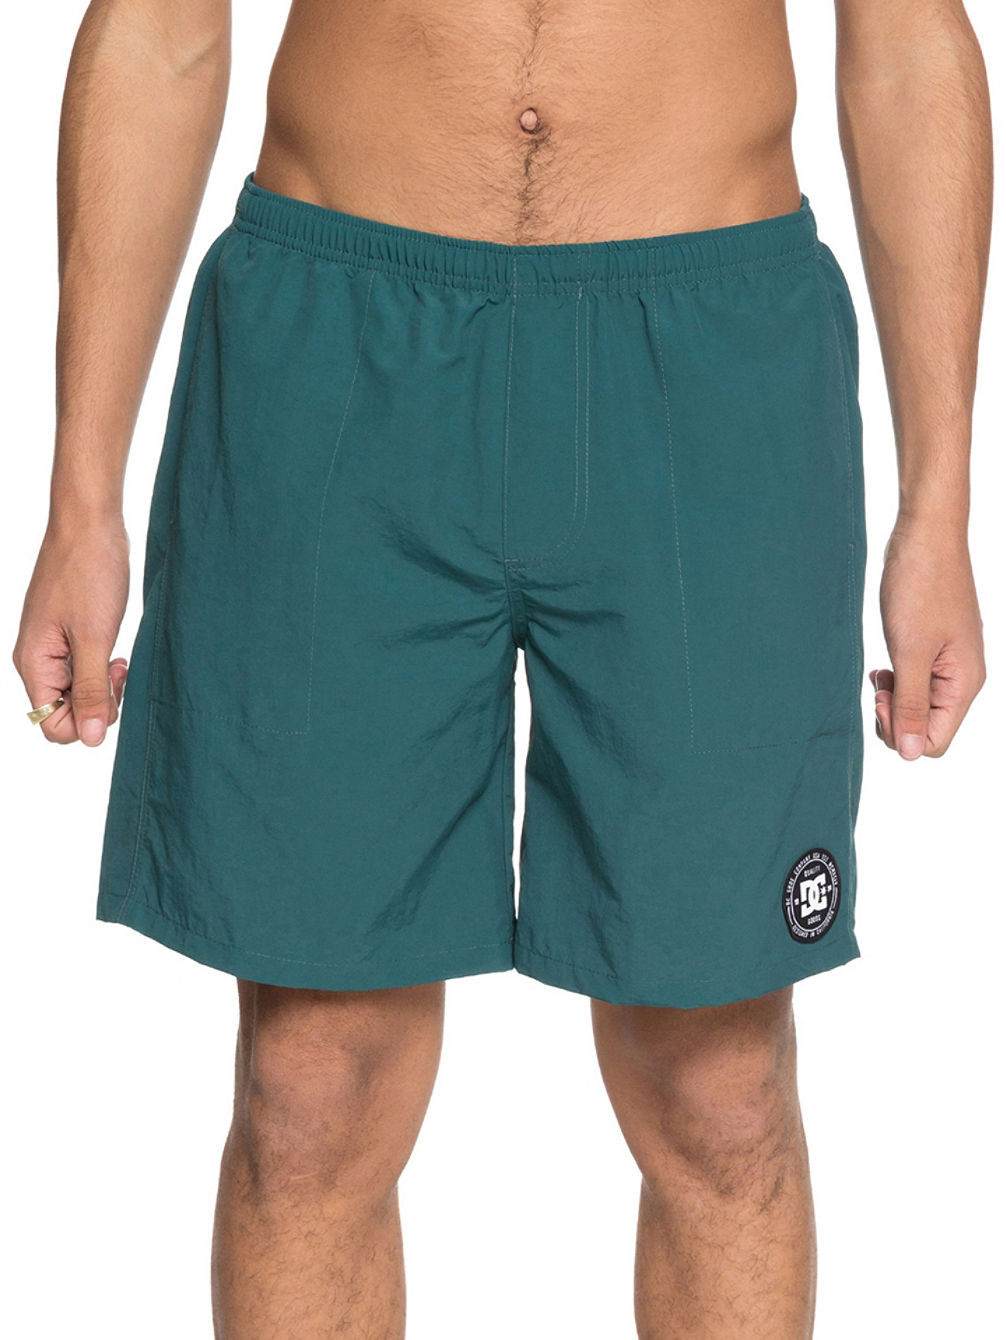 Lite Way 18 Shorts